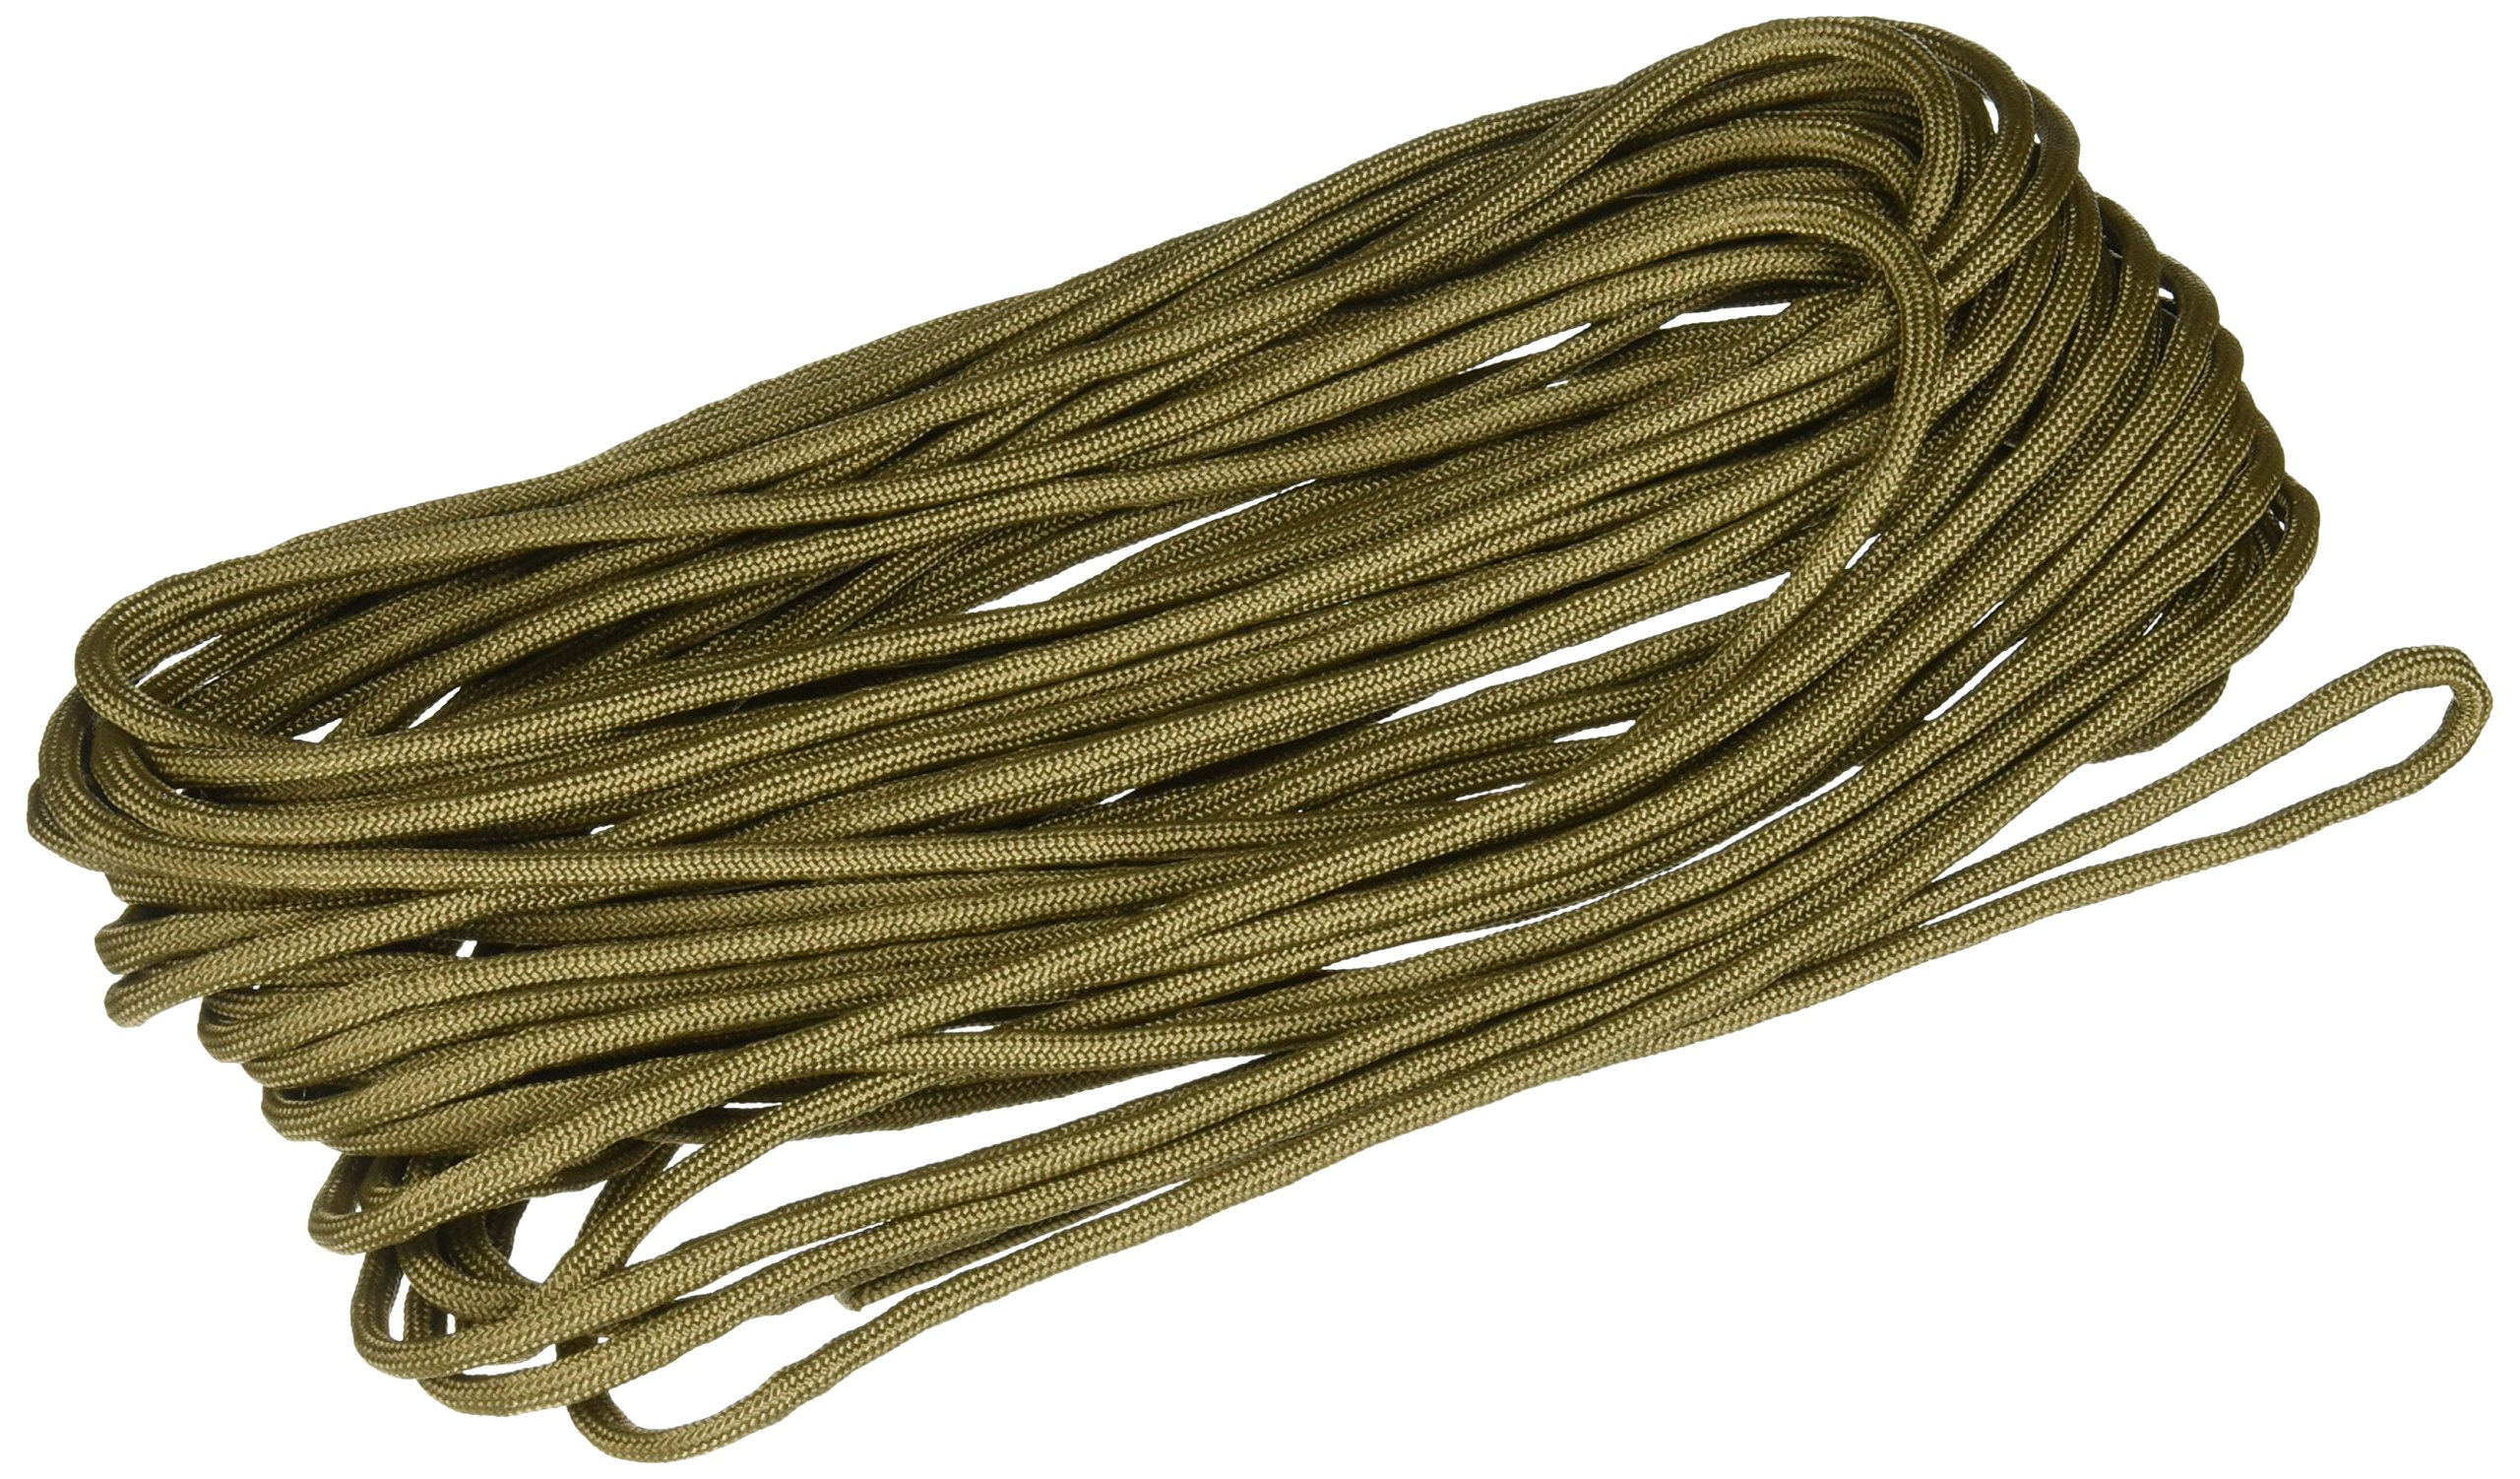 Liberty Mountain Paracord, Coyote Brown, 50-Feet by Liberty Mountain (Image #1)